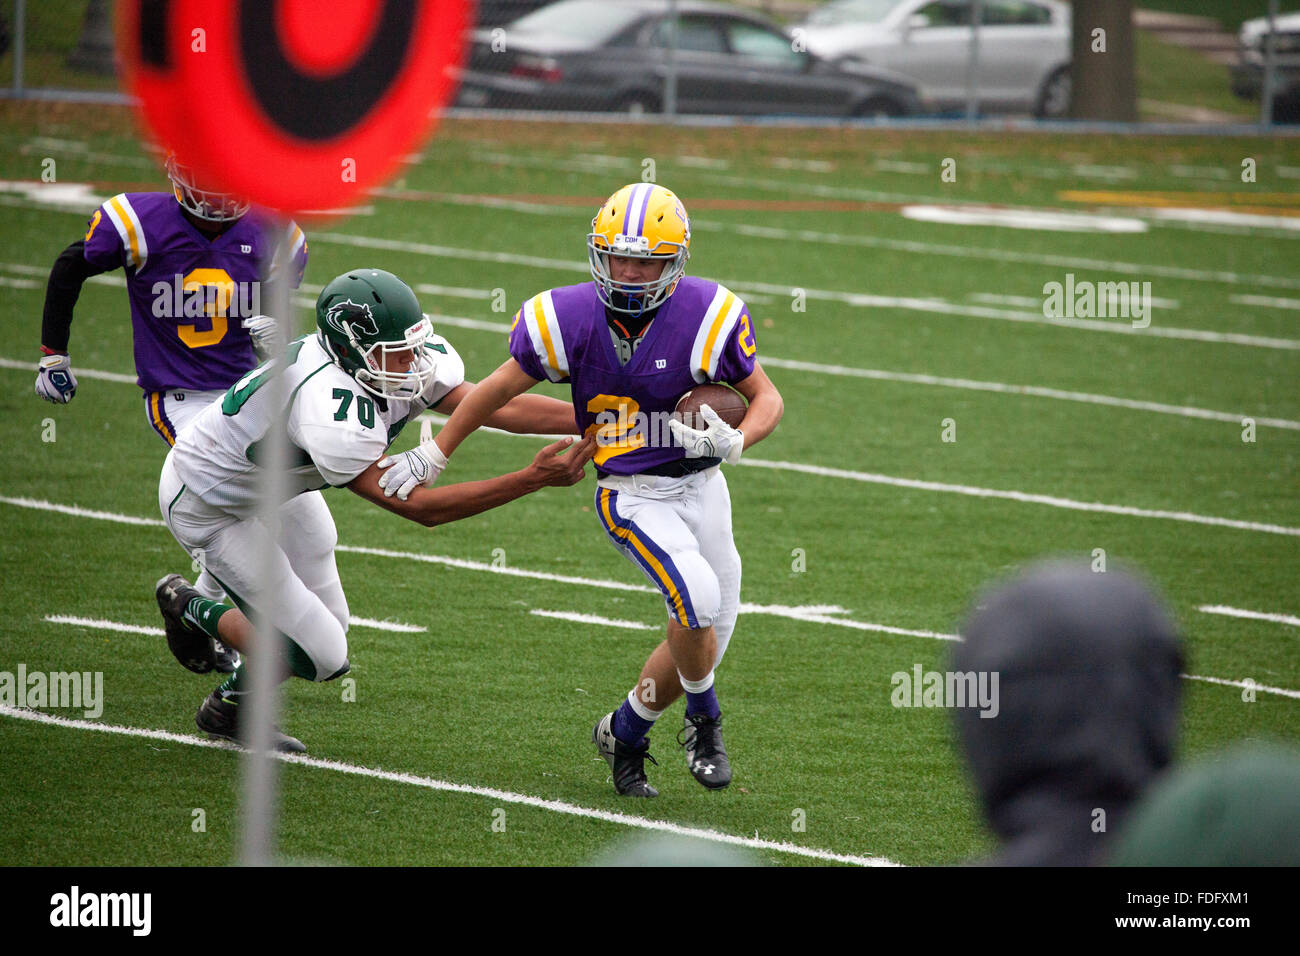 Mounds View football player tackling Cretin-Derham Hall High School runner with ball Jr. Varsity game. St Paul Minnesota - Stock Image